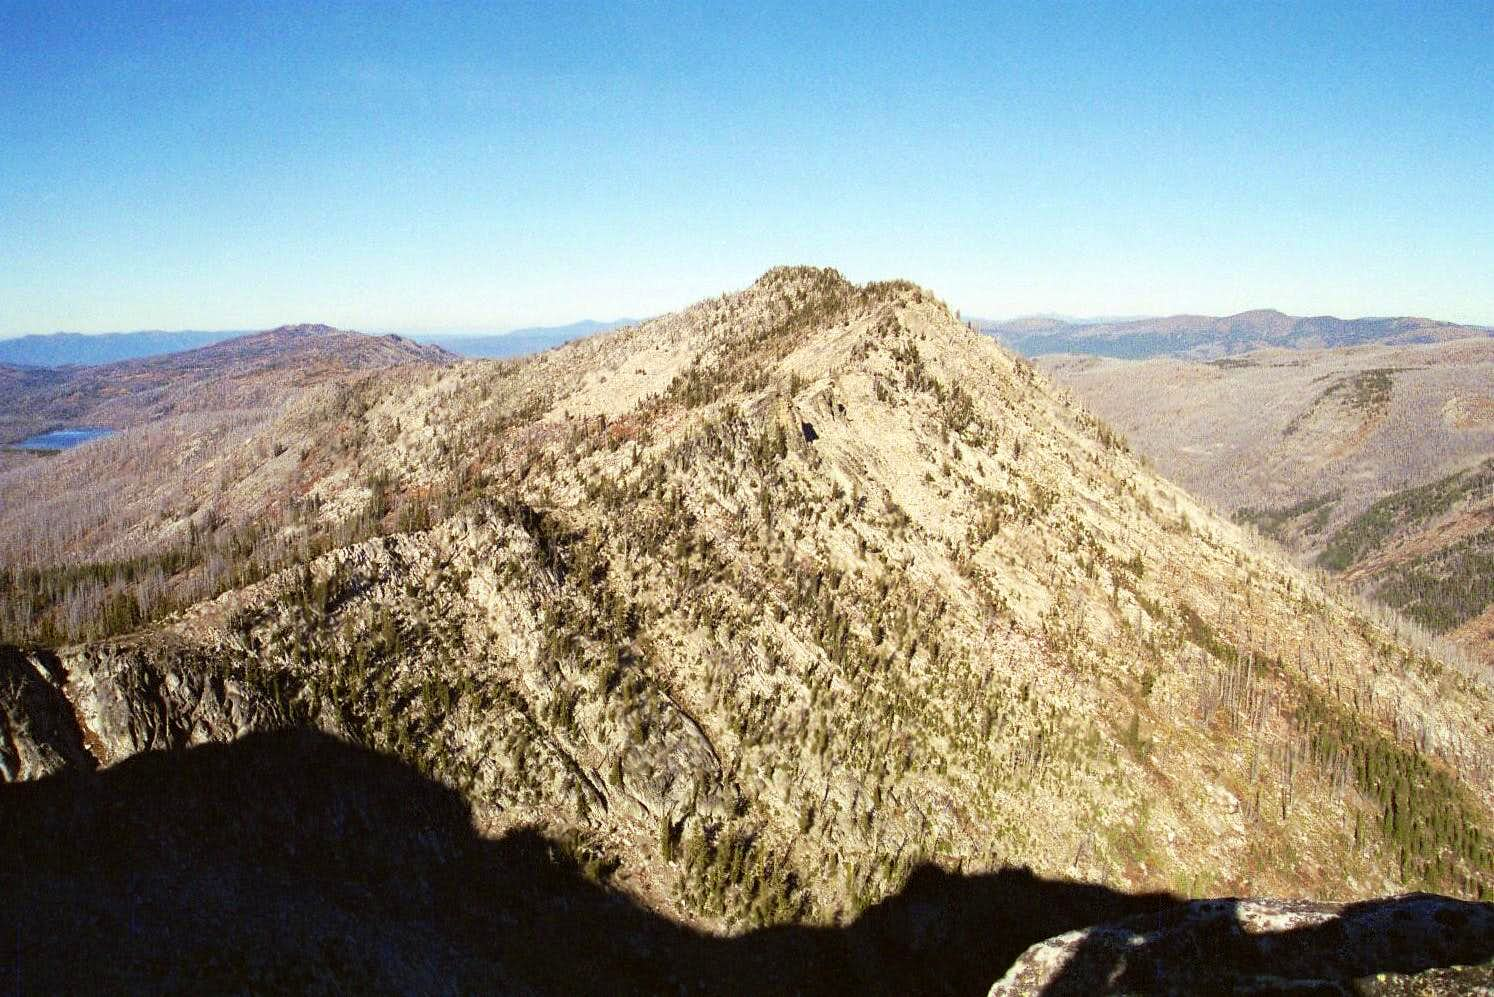 Bruin Mountain, north